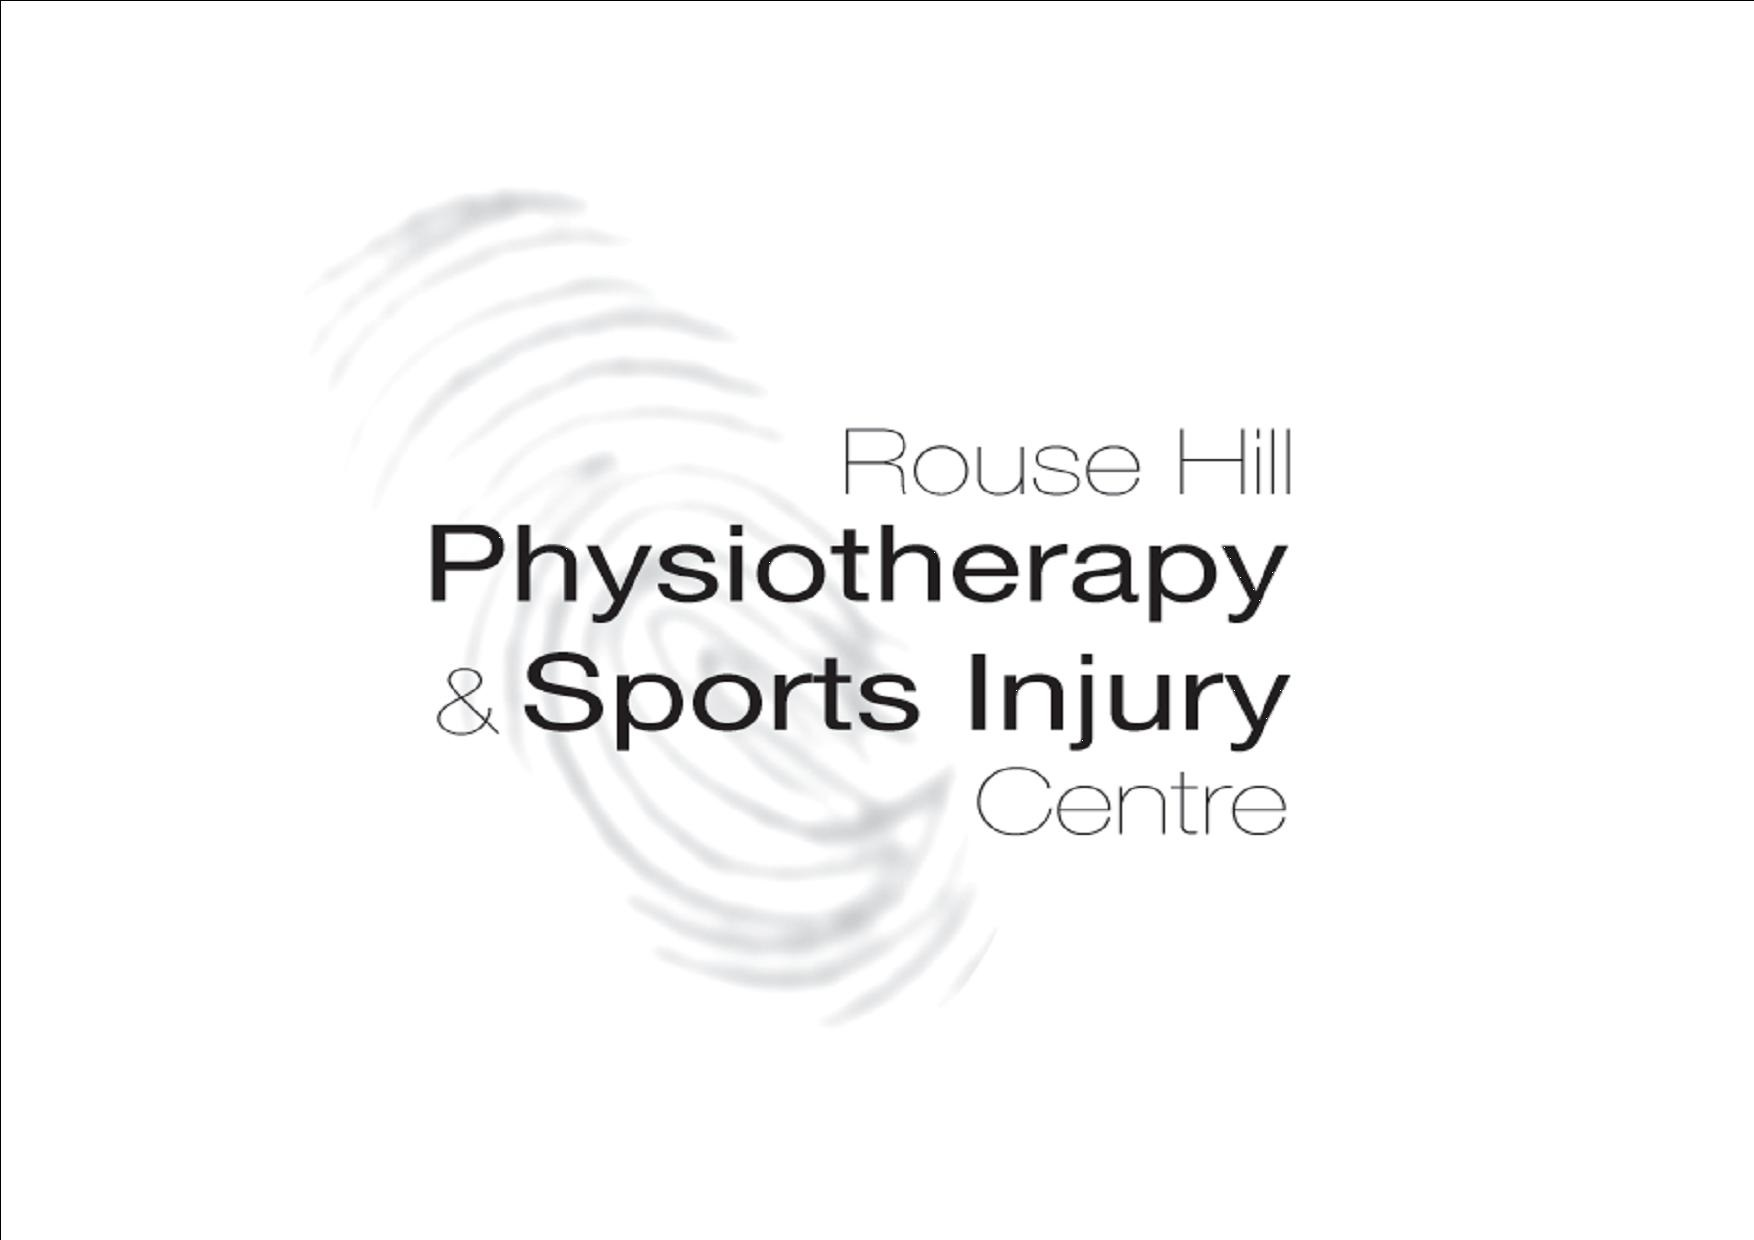 Rouse Hill Physiotherapy & Sports Injury Centre